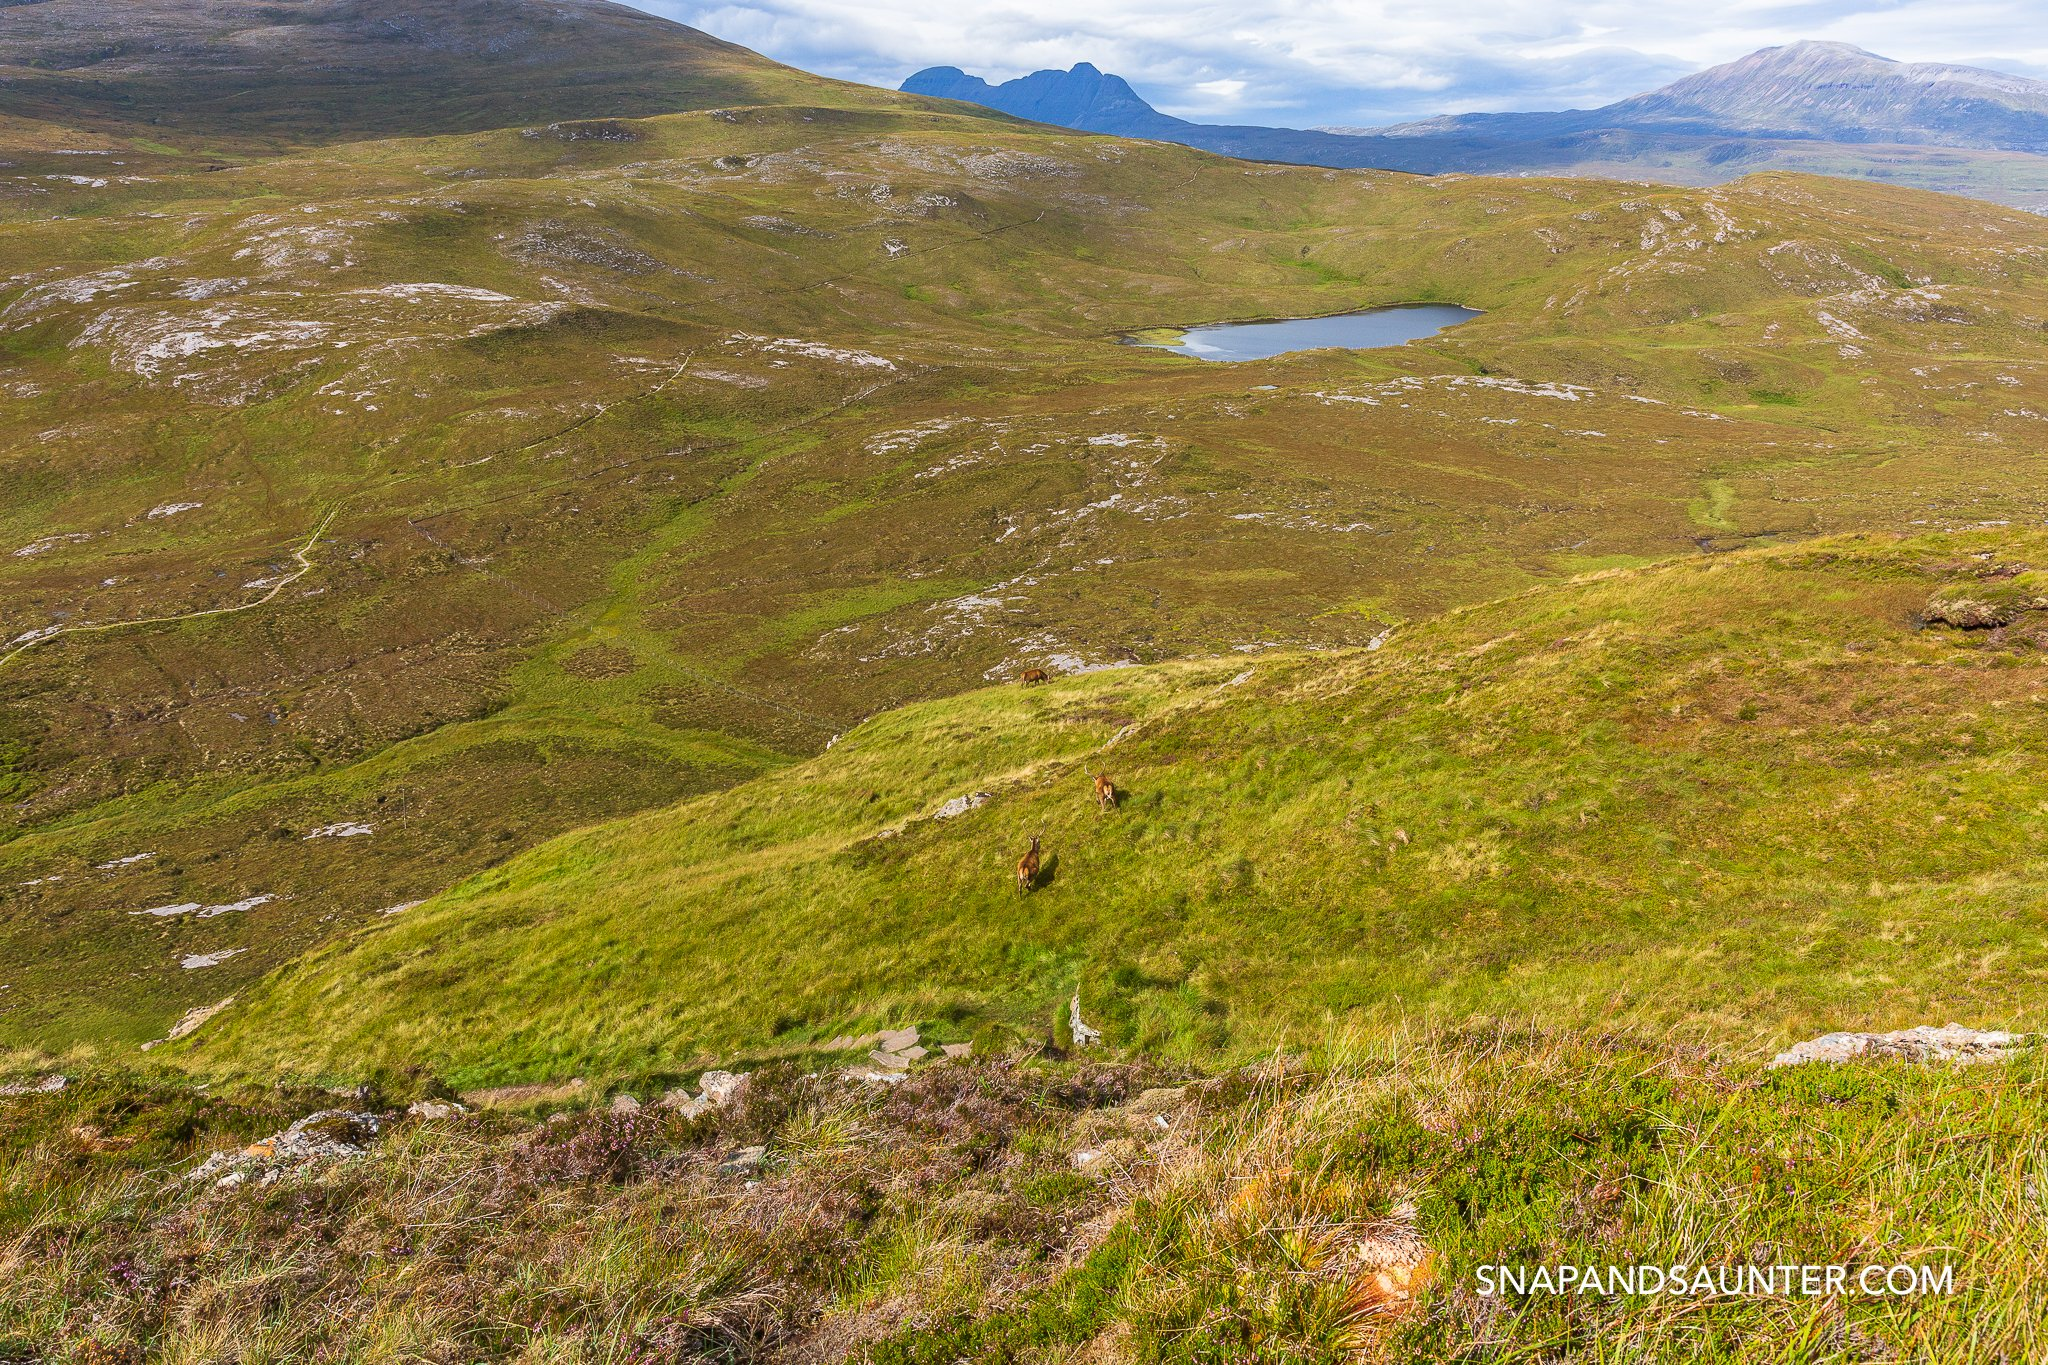 Knockan Crag National Nature Reserve on route North Coast 500 in the Scottish Highlands